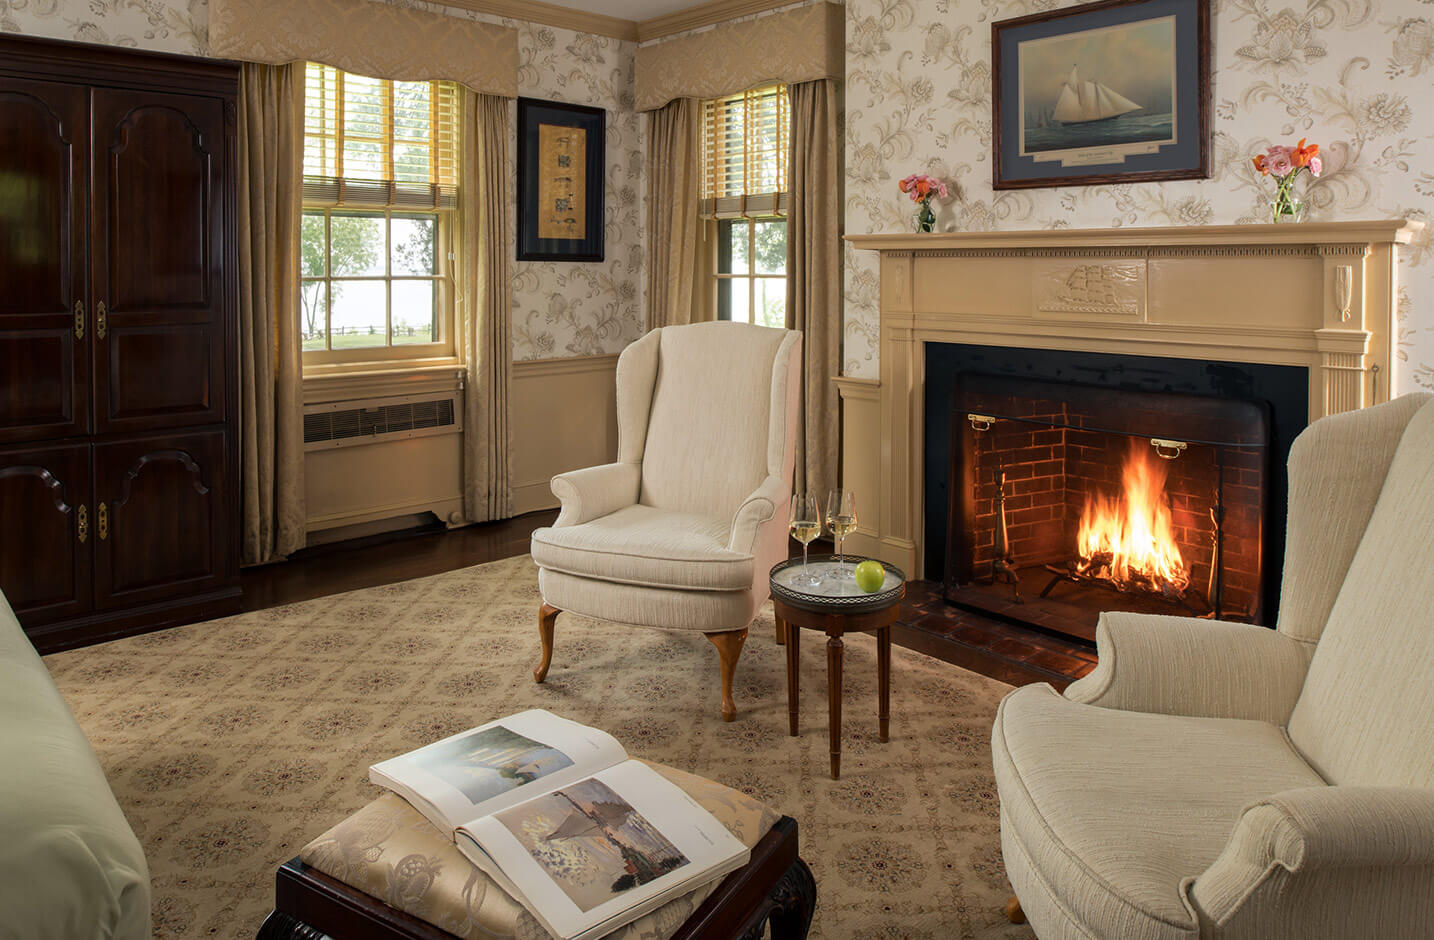 D'Oench Room seating area with fireplace at our Chestertown, MD B&B